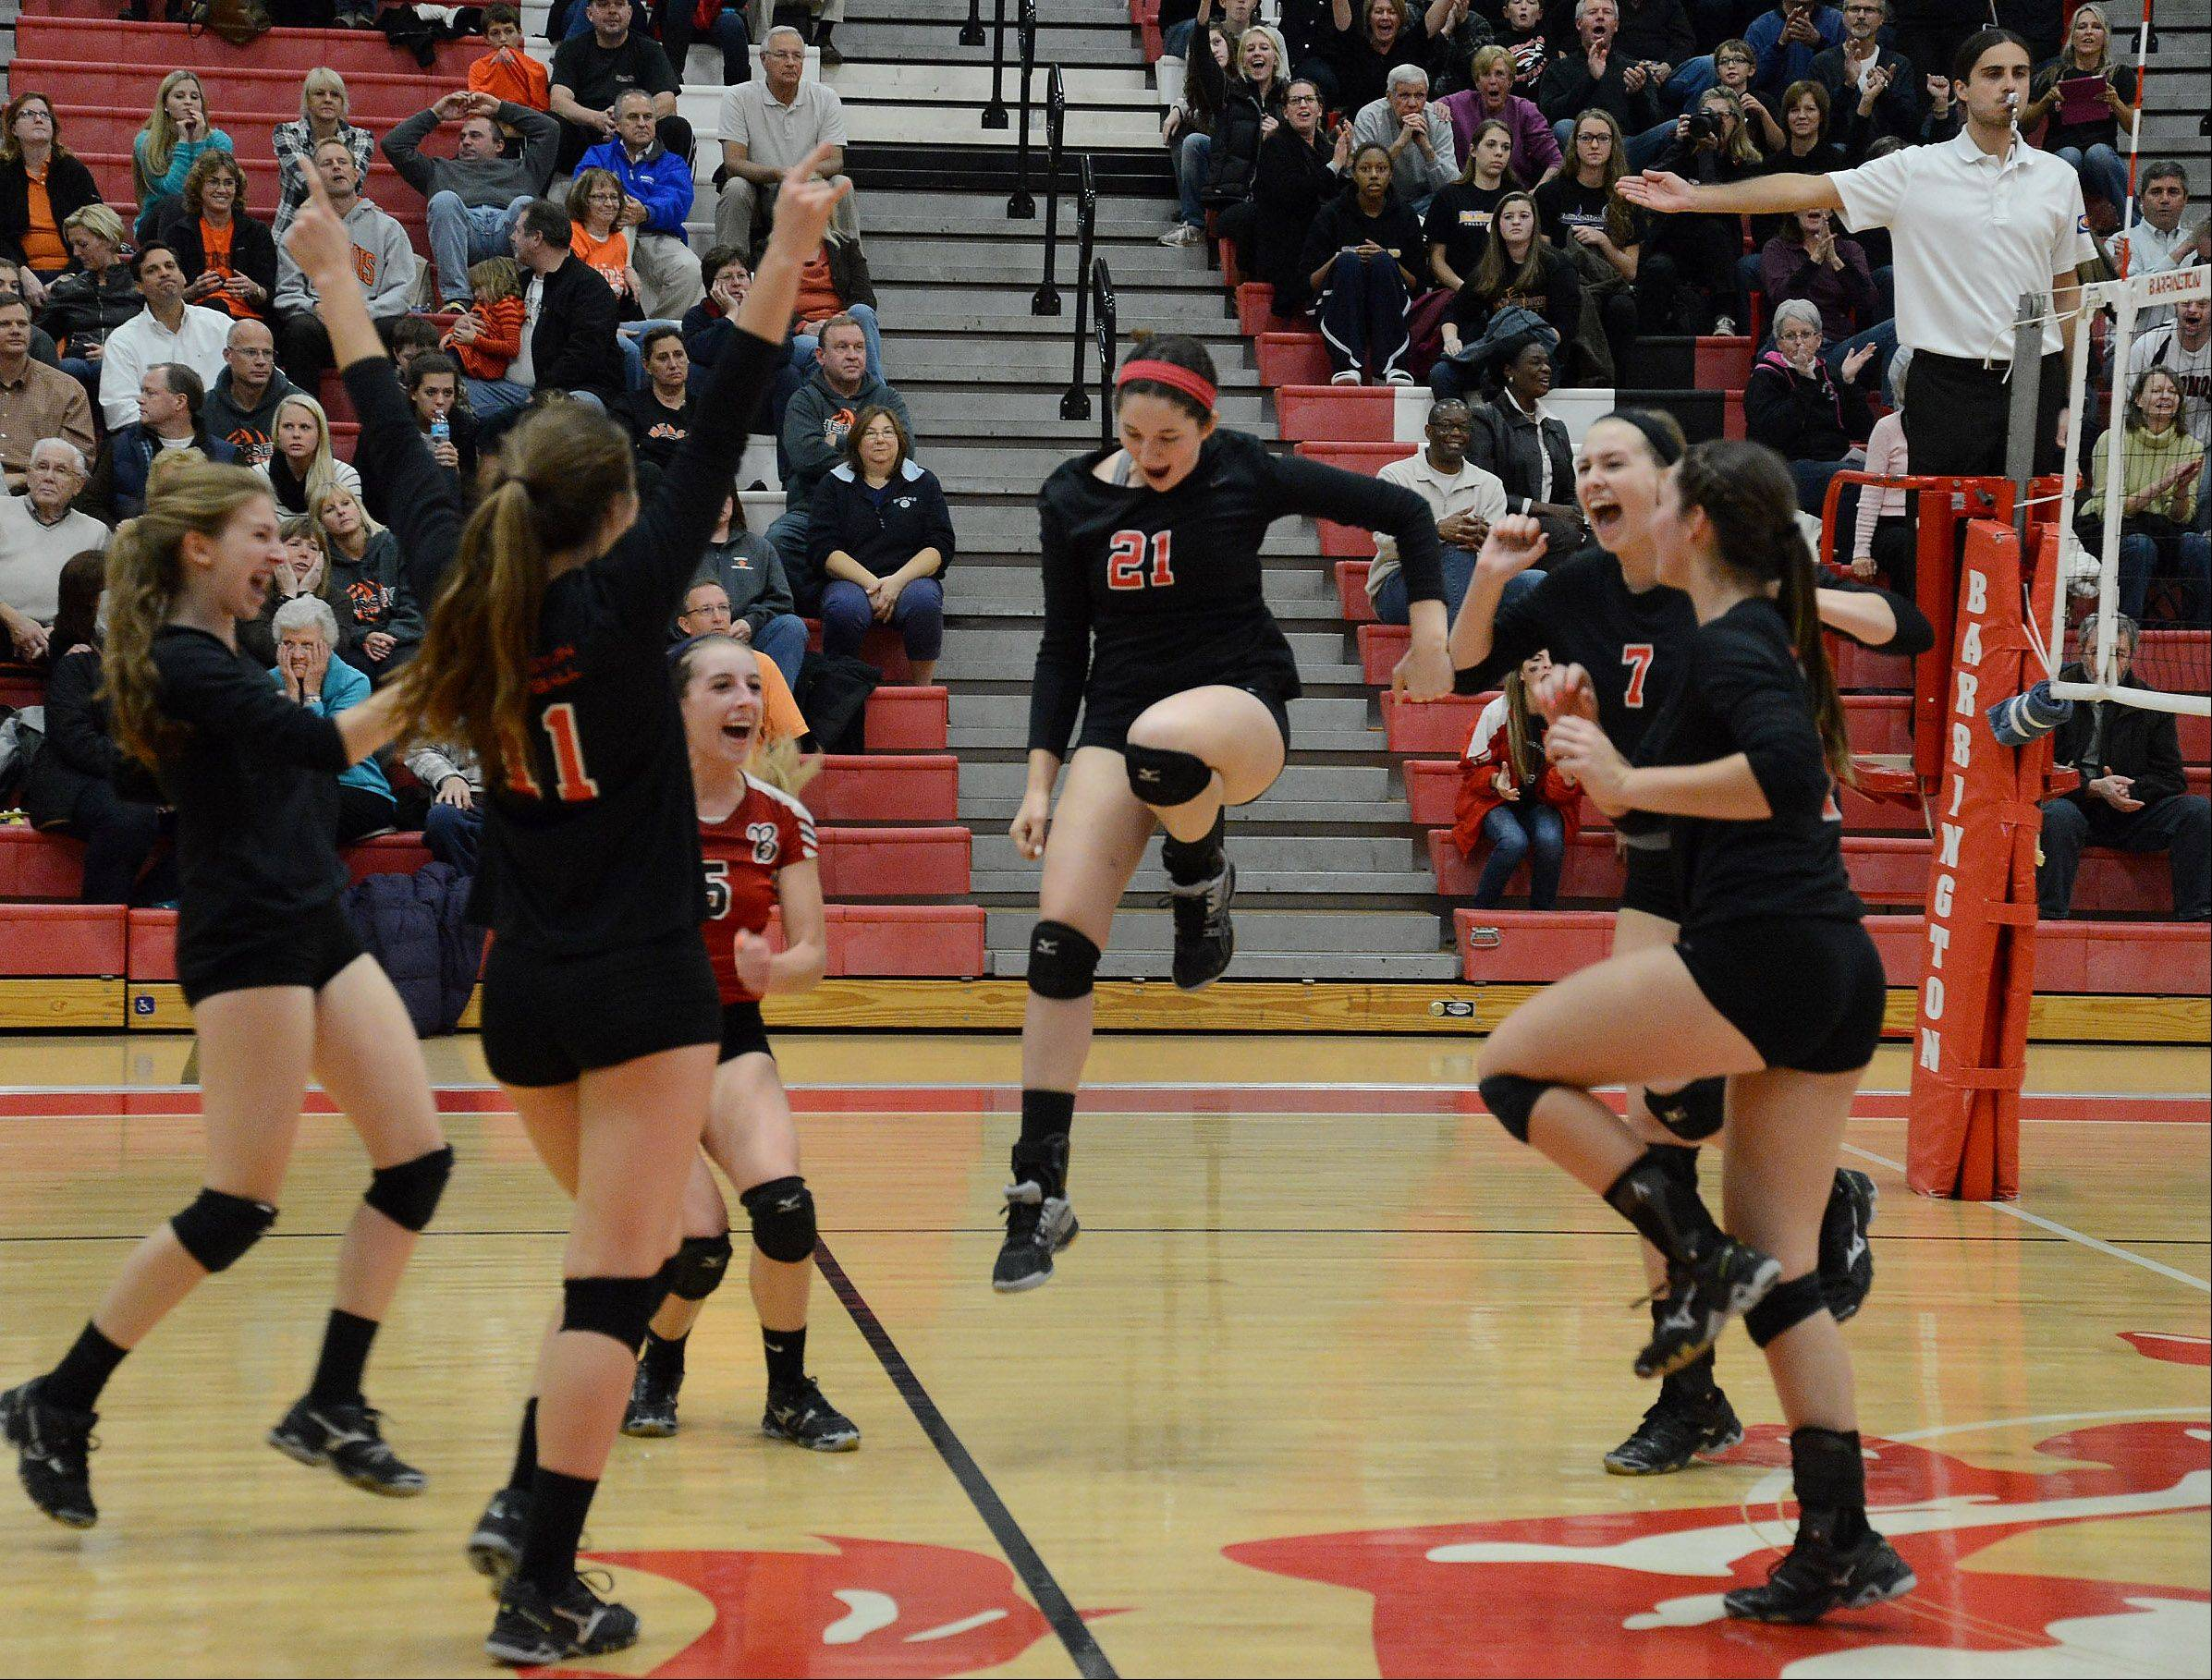 Barrington celebrates the final point after beating Hersey in the Mid-Suburban League girls volleyball championship matchup.